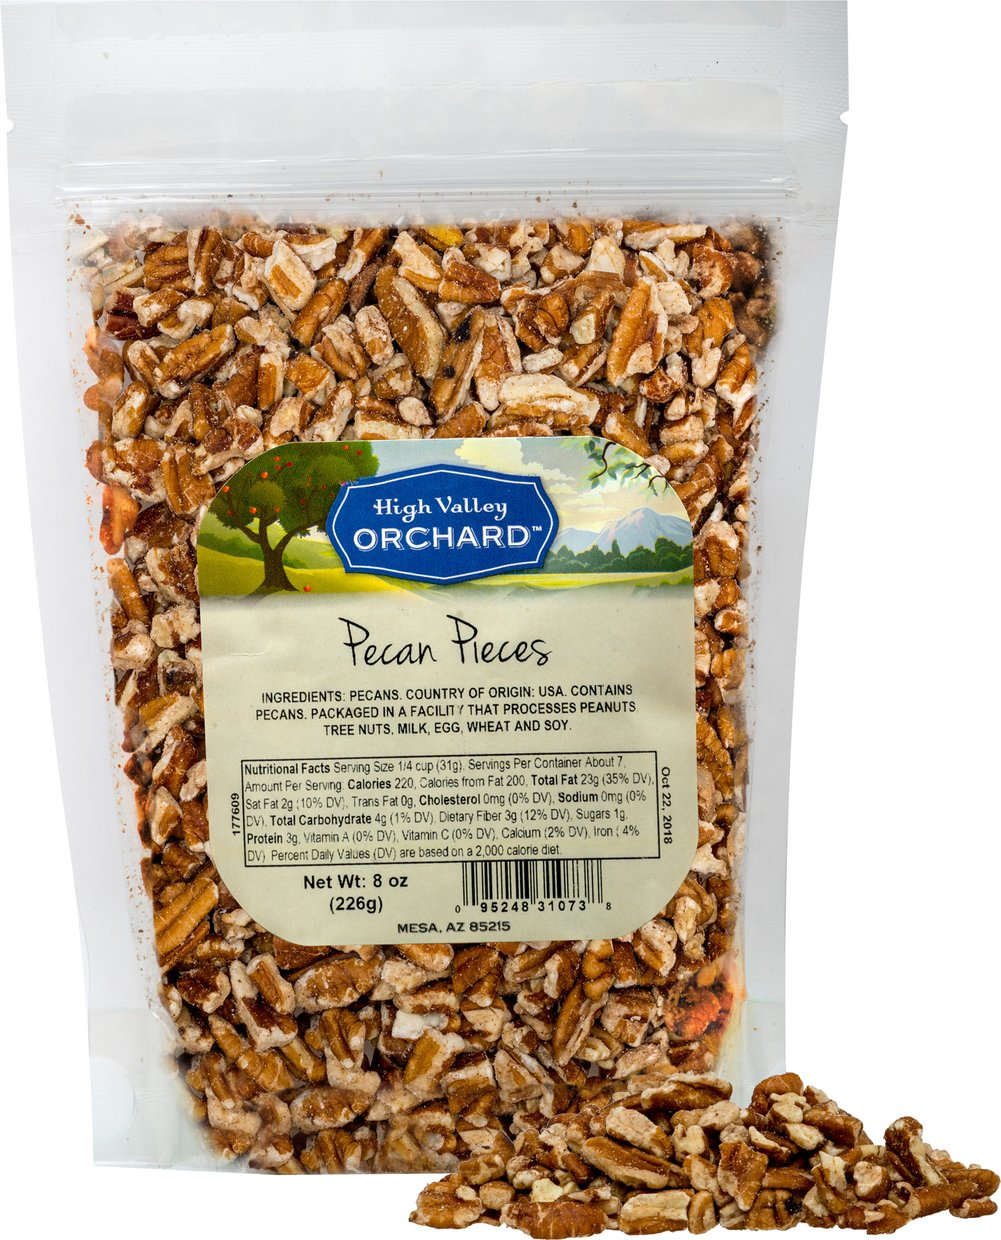 Pecan Pieces <p><strong>From the Manufacturer:</strong></p><p><strong></strong>These raw Pecan Pieces have all the flavor of the Halves, in miniature. Add them to any dessert for just the right touch of nut and crunch! These are great as toppings and mix-ins for ice cream, cakes, cookies, and many other recipes.</p> 8 oz Bag  $8.99